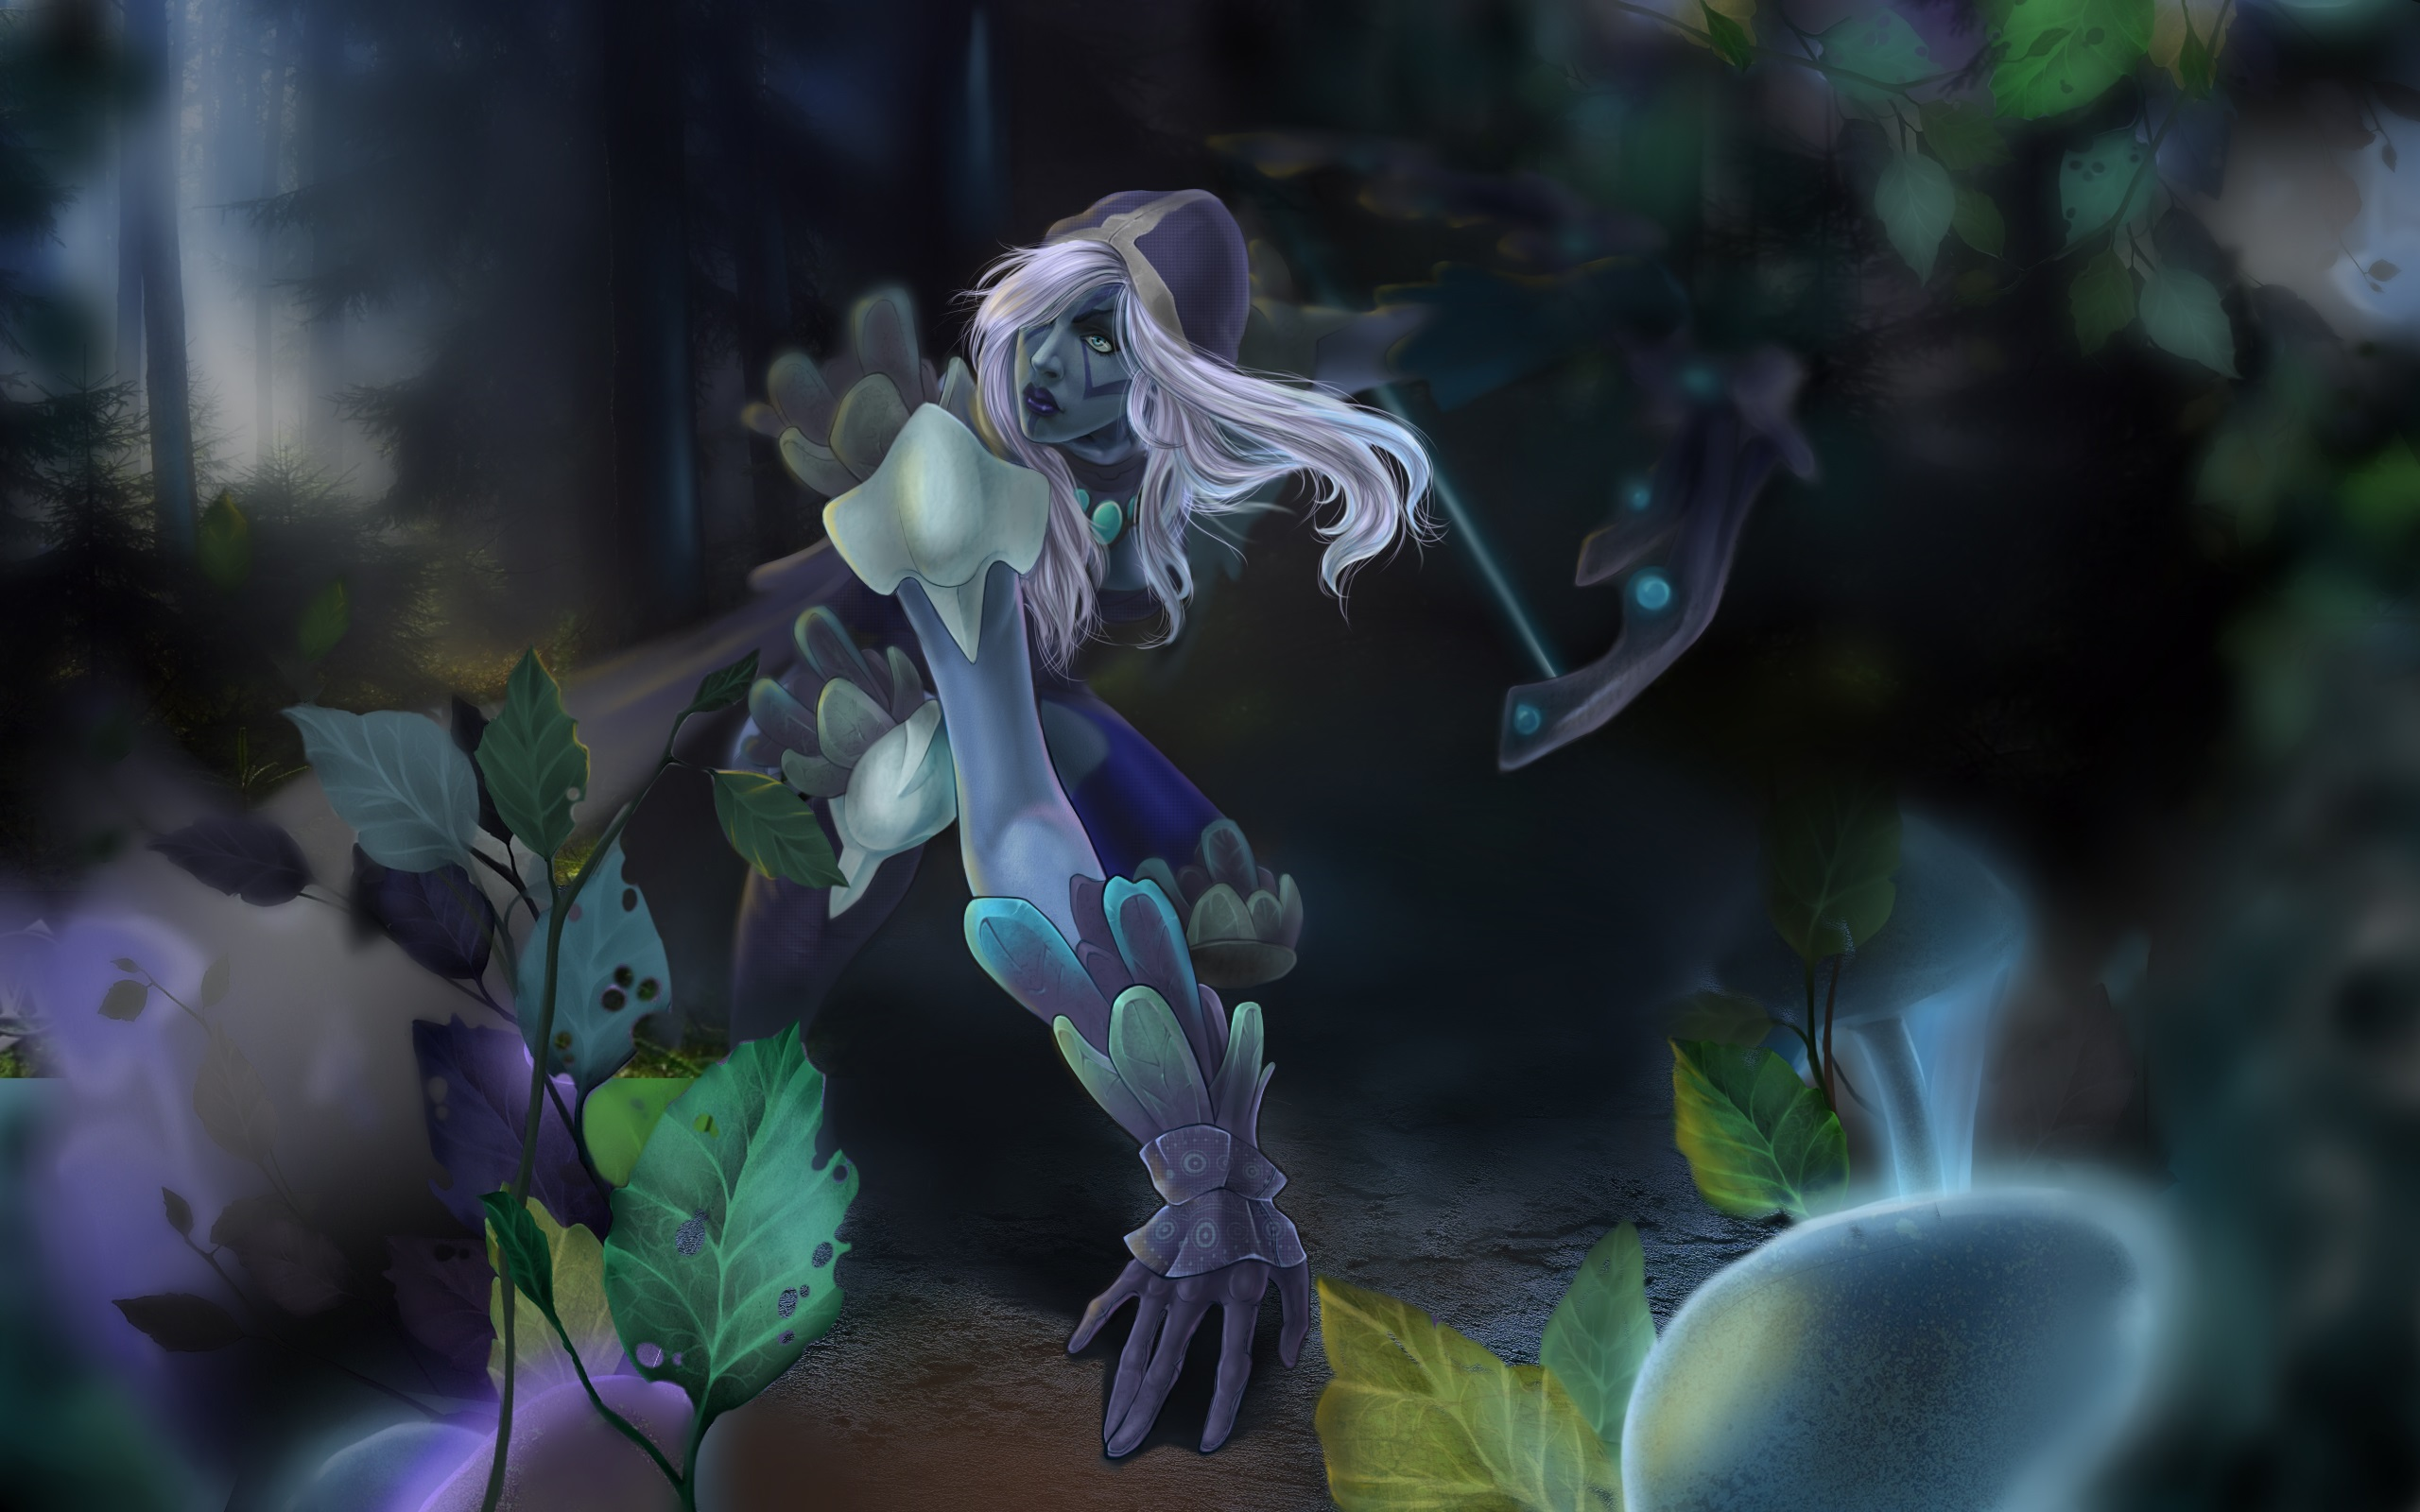 Desktop pc wallpaper Drow Ranger